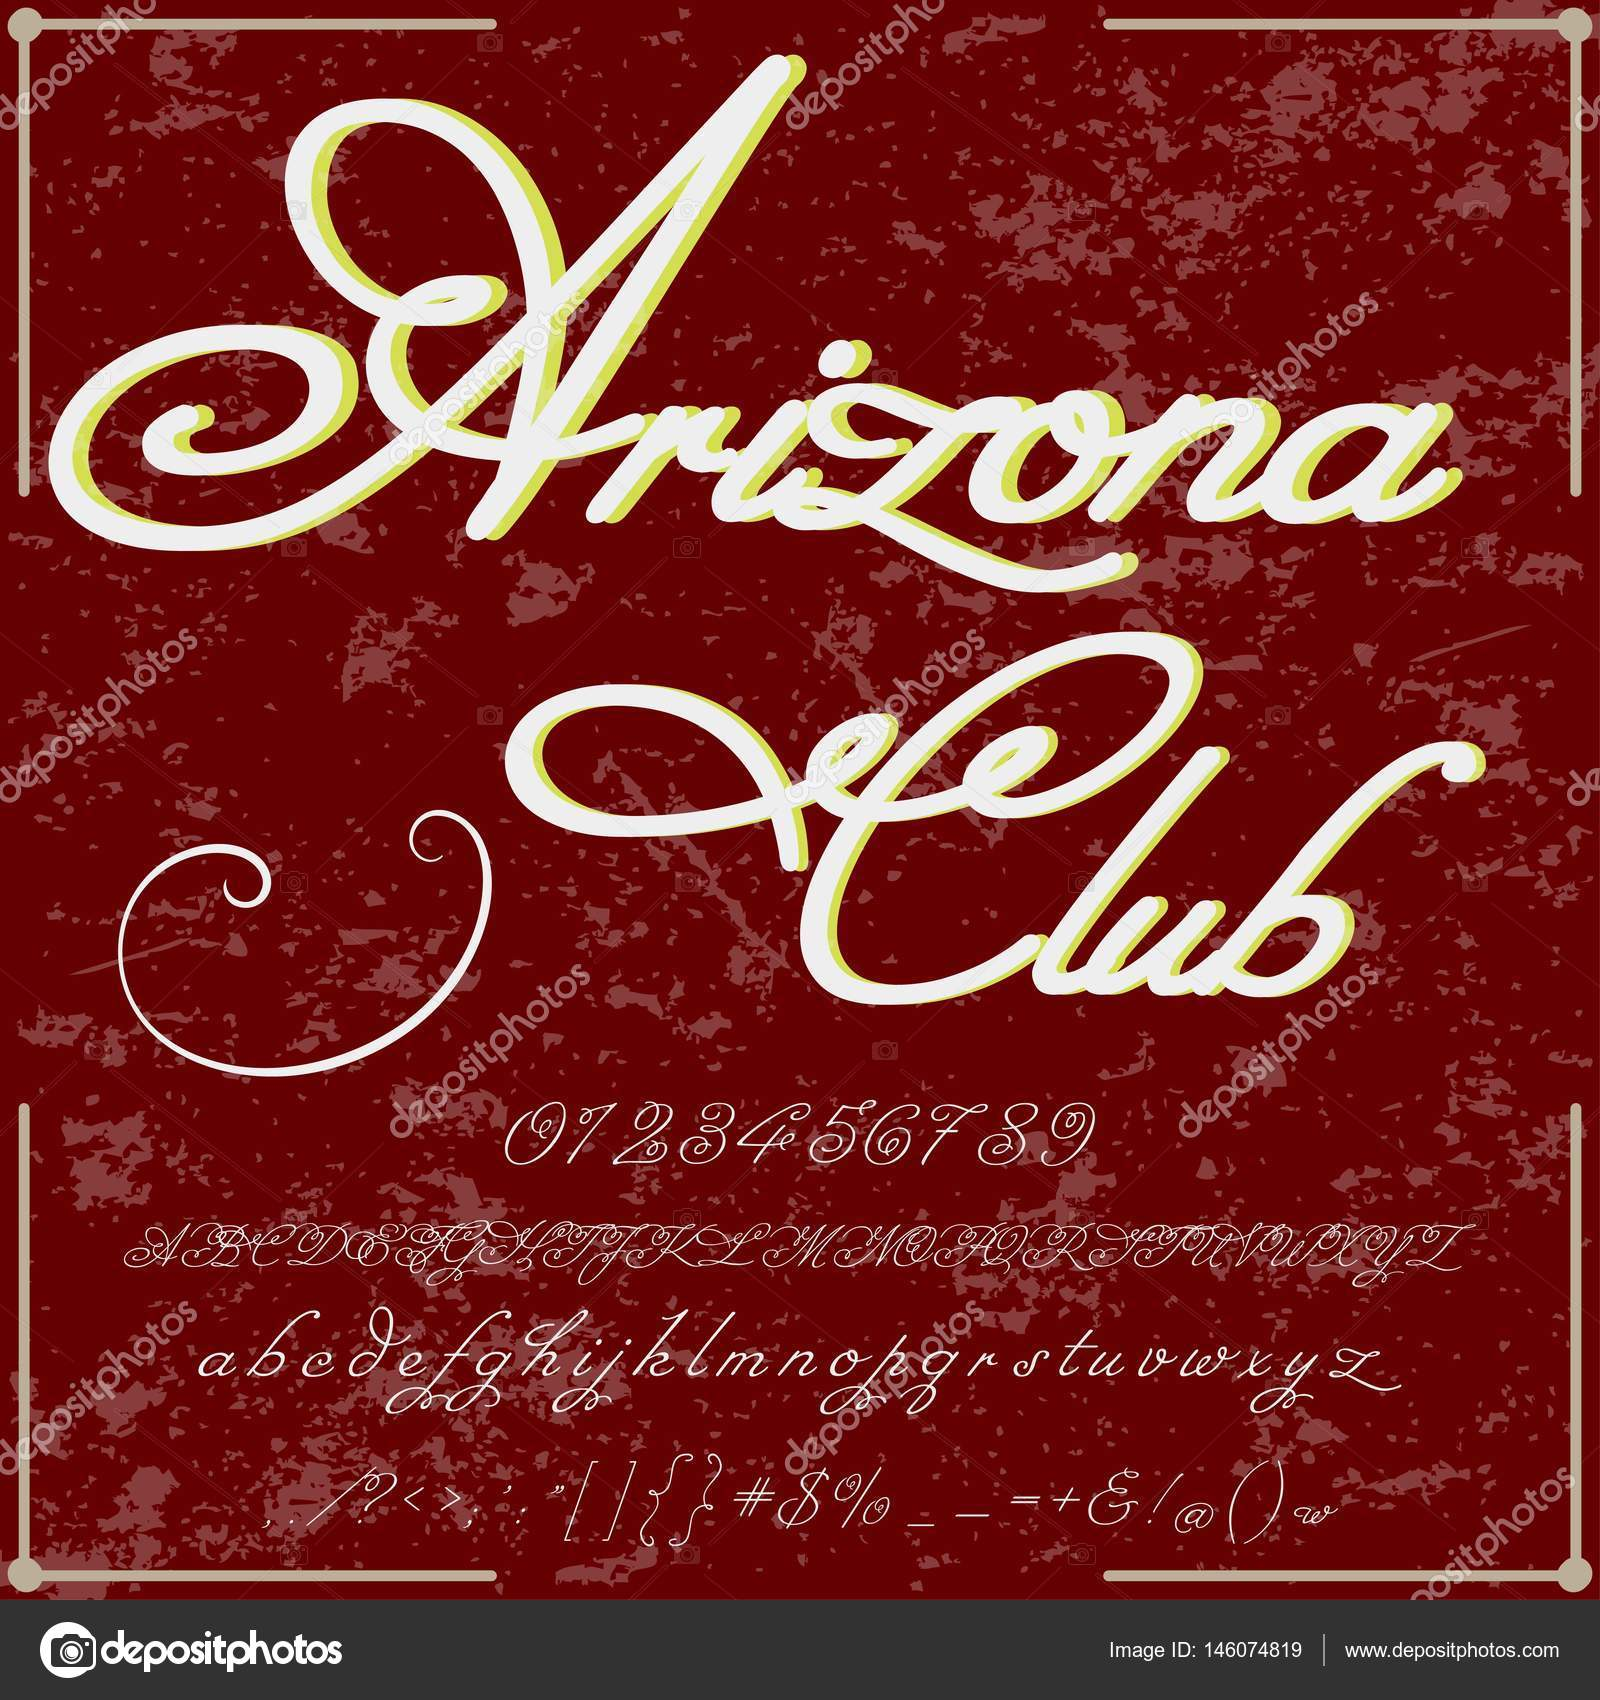 Font Script Typeface arizona club Vintage frame label design ...